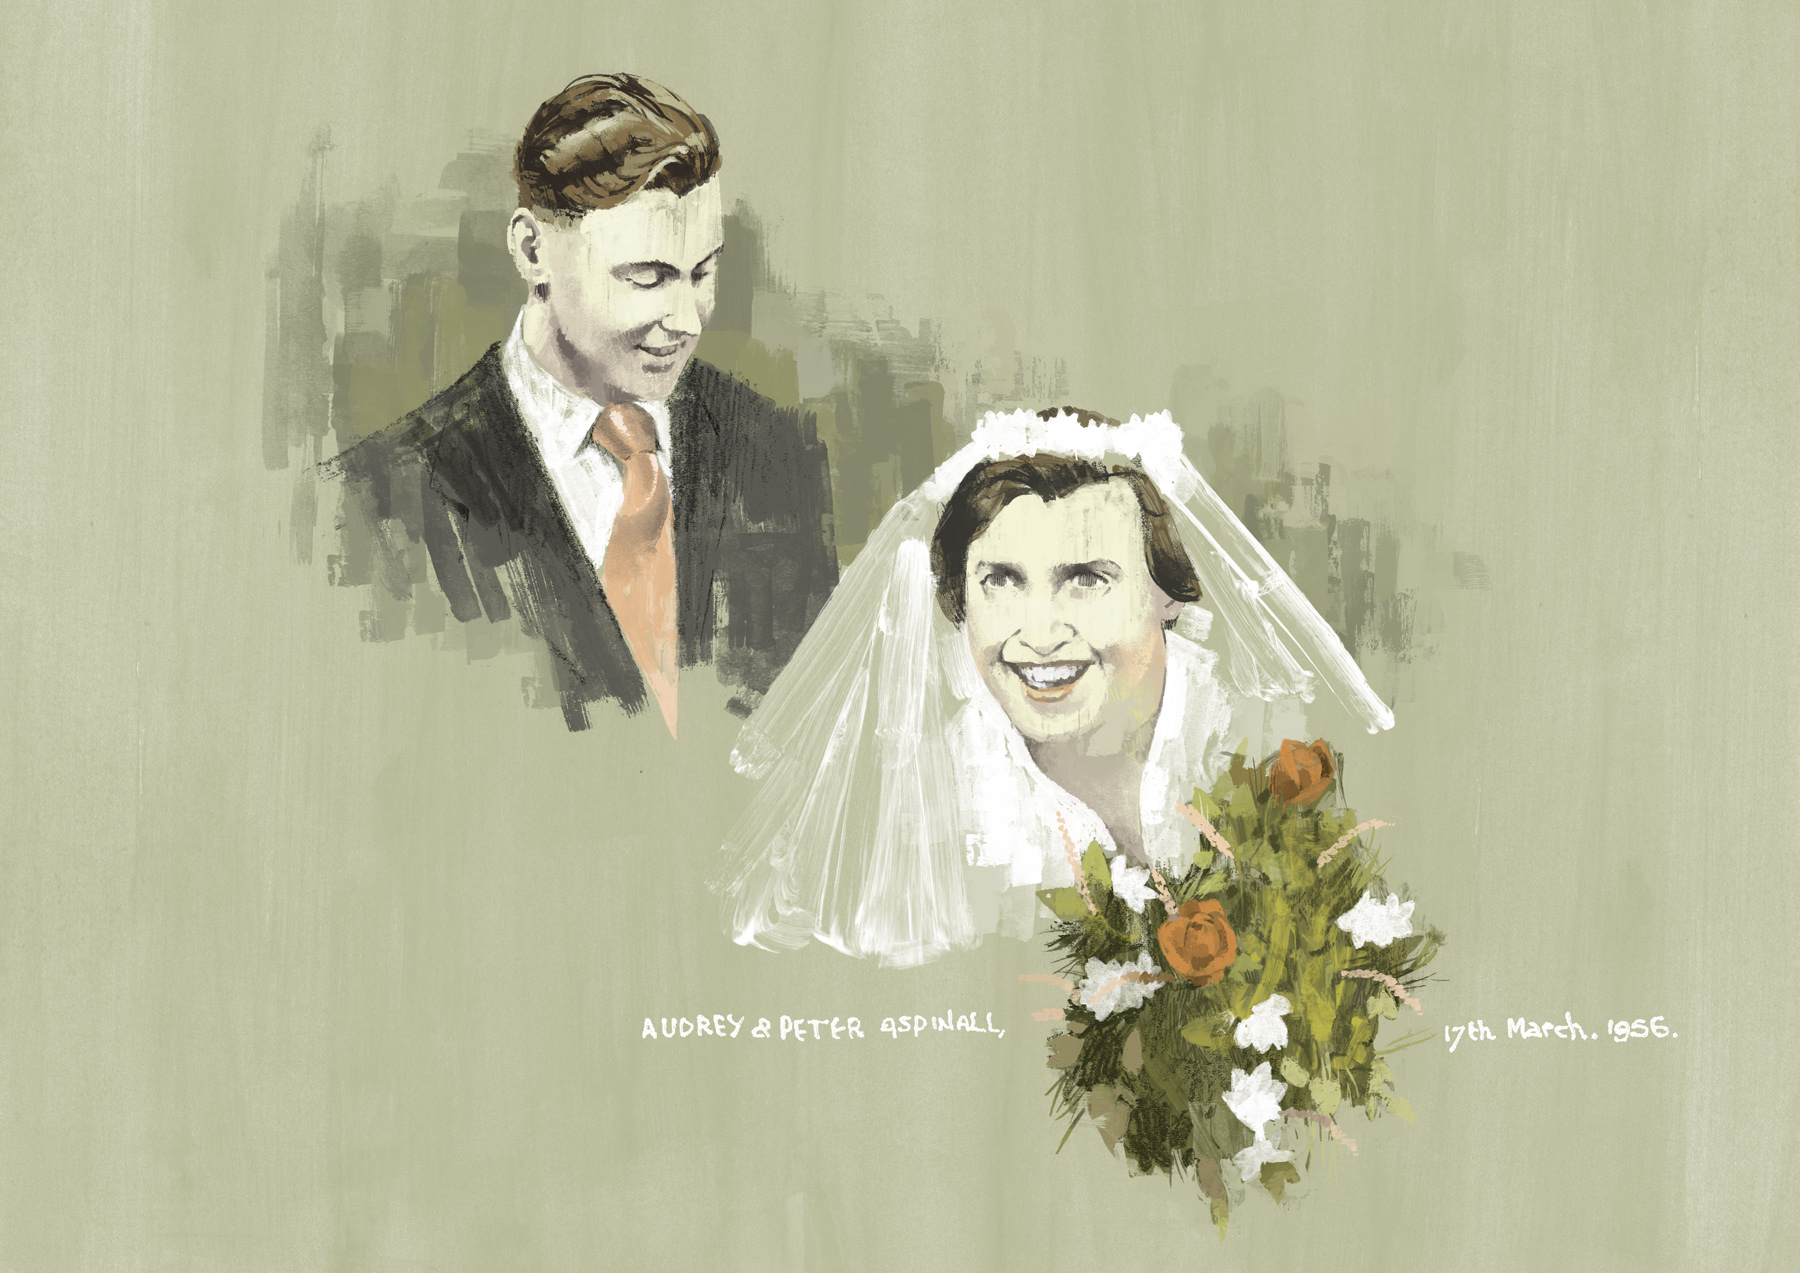 Audrey and Peter Aspinall by Marc Aspinall